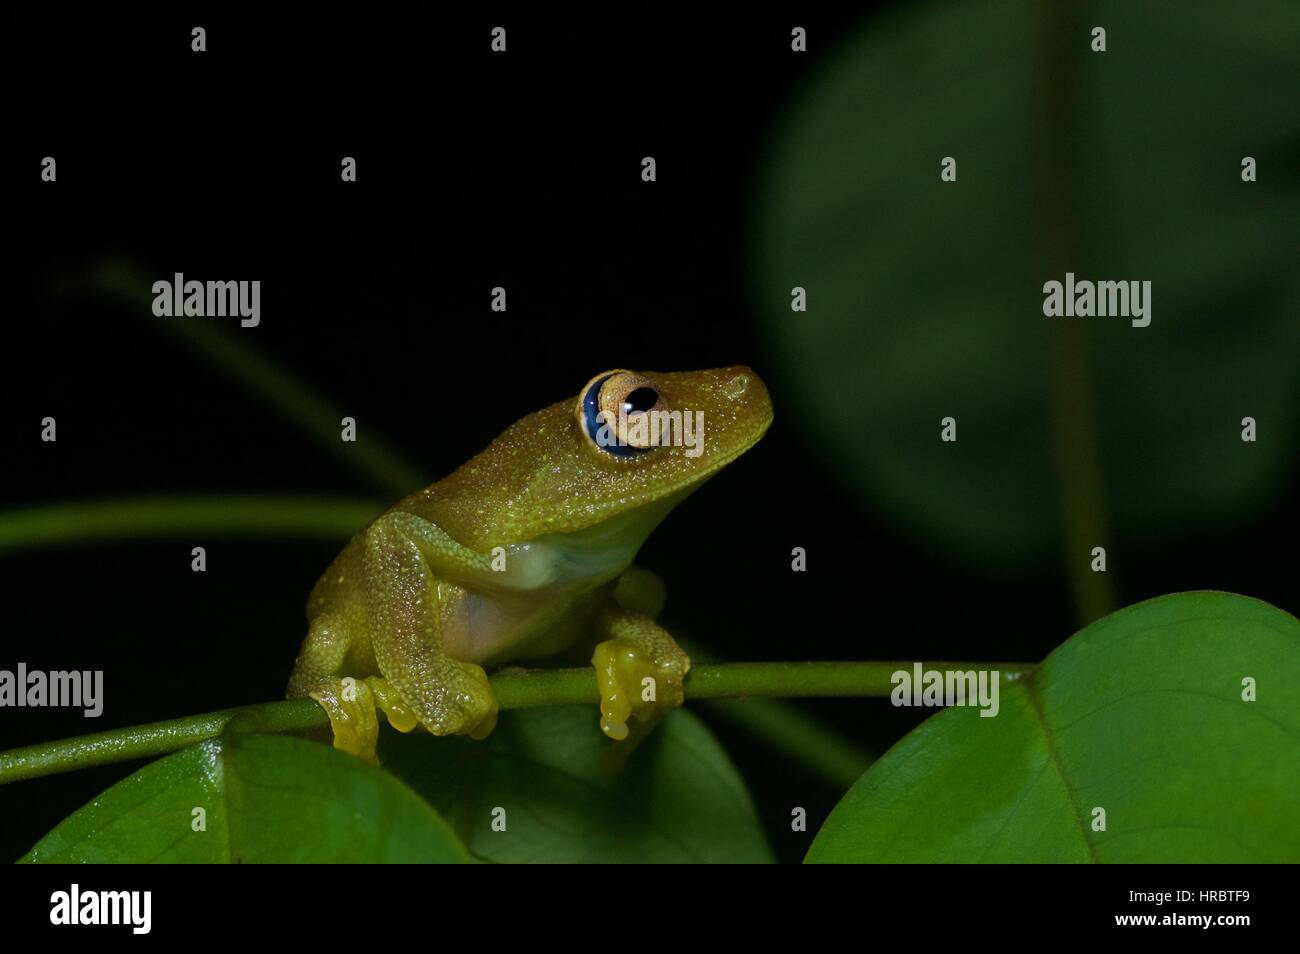 A Rough-skinned Green Tree Frog (Hypsiboas cinerascens) in the Amazon rainforest in Loreto, Peru - Stock Image